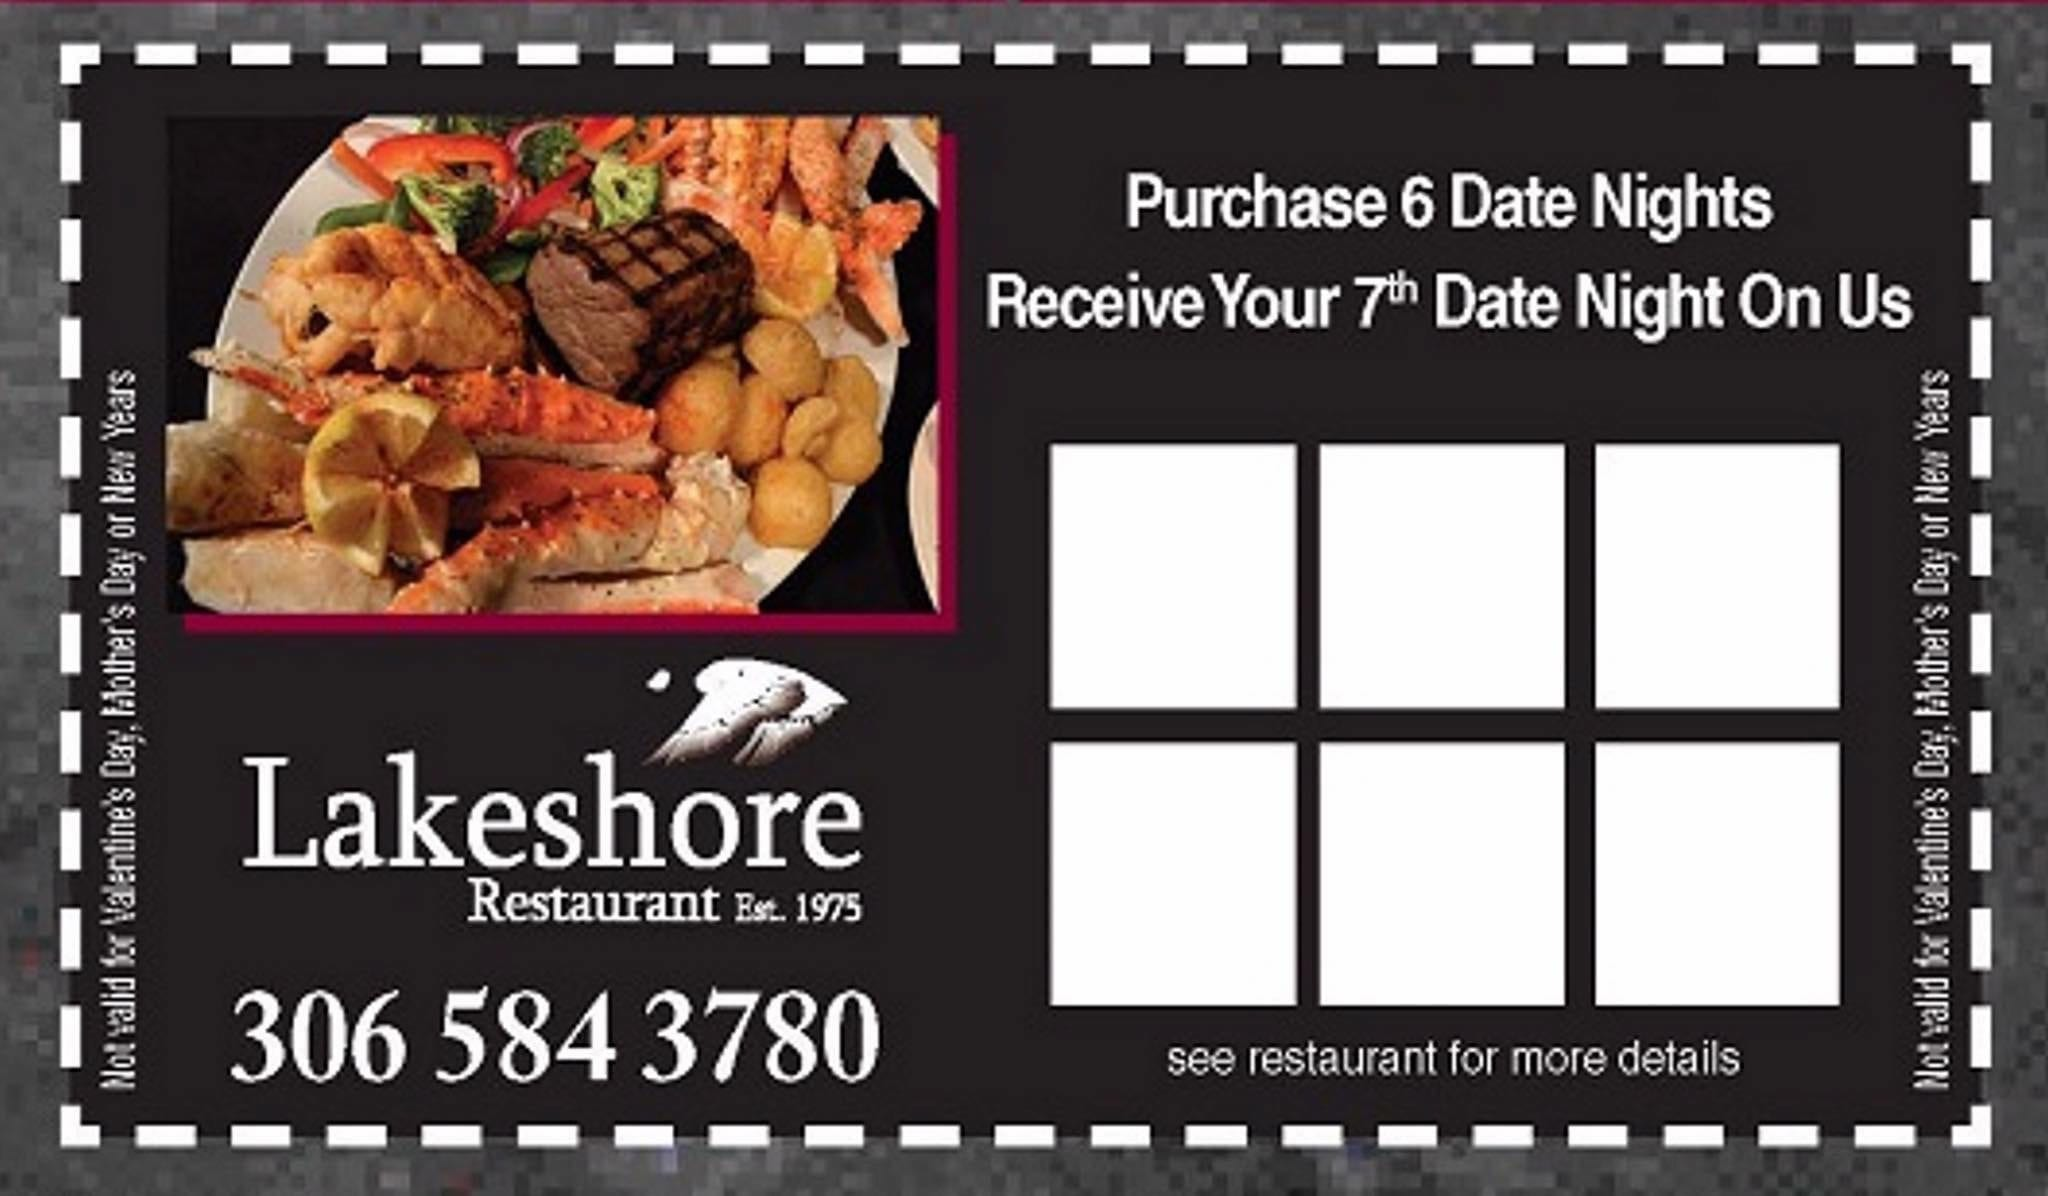 Lakeshore Restaurant Est.1975. Purchase 6 Dates Nights Receive Your 7th Date Night On Us.